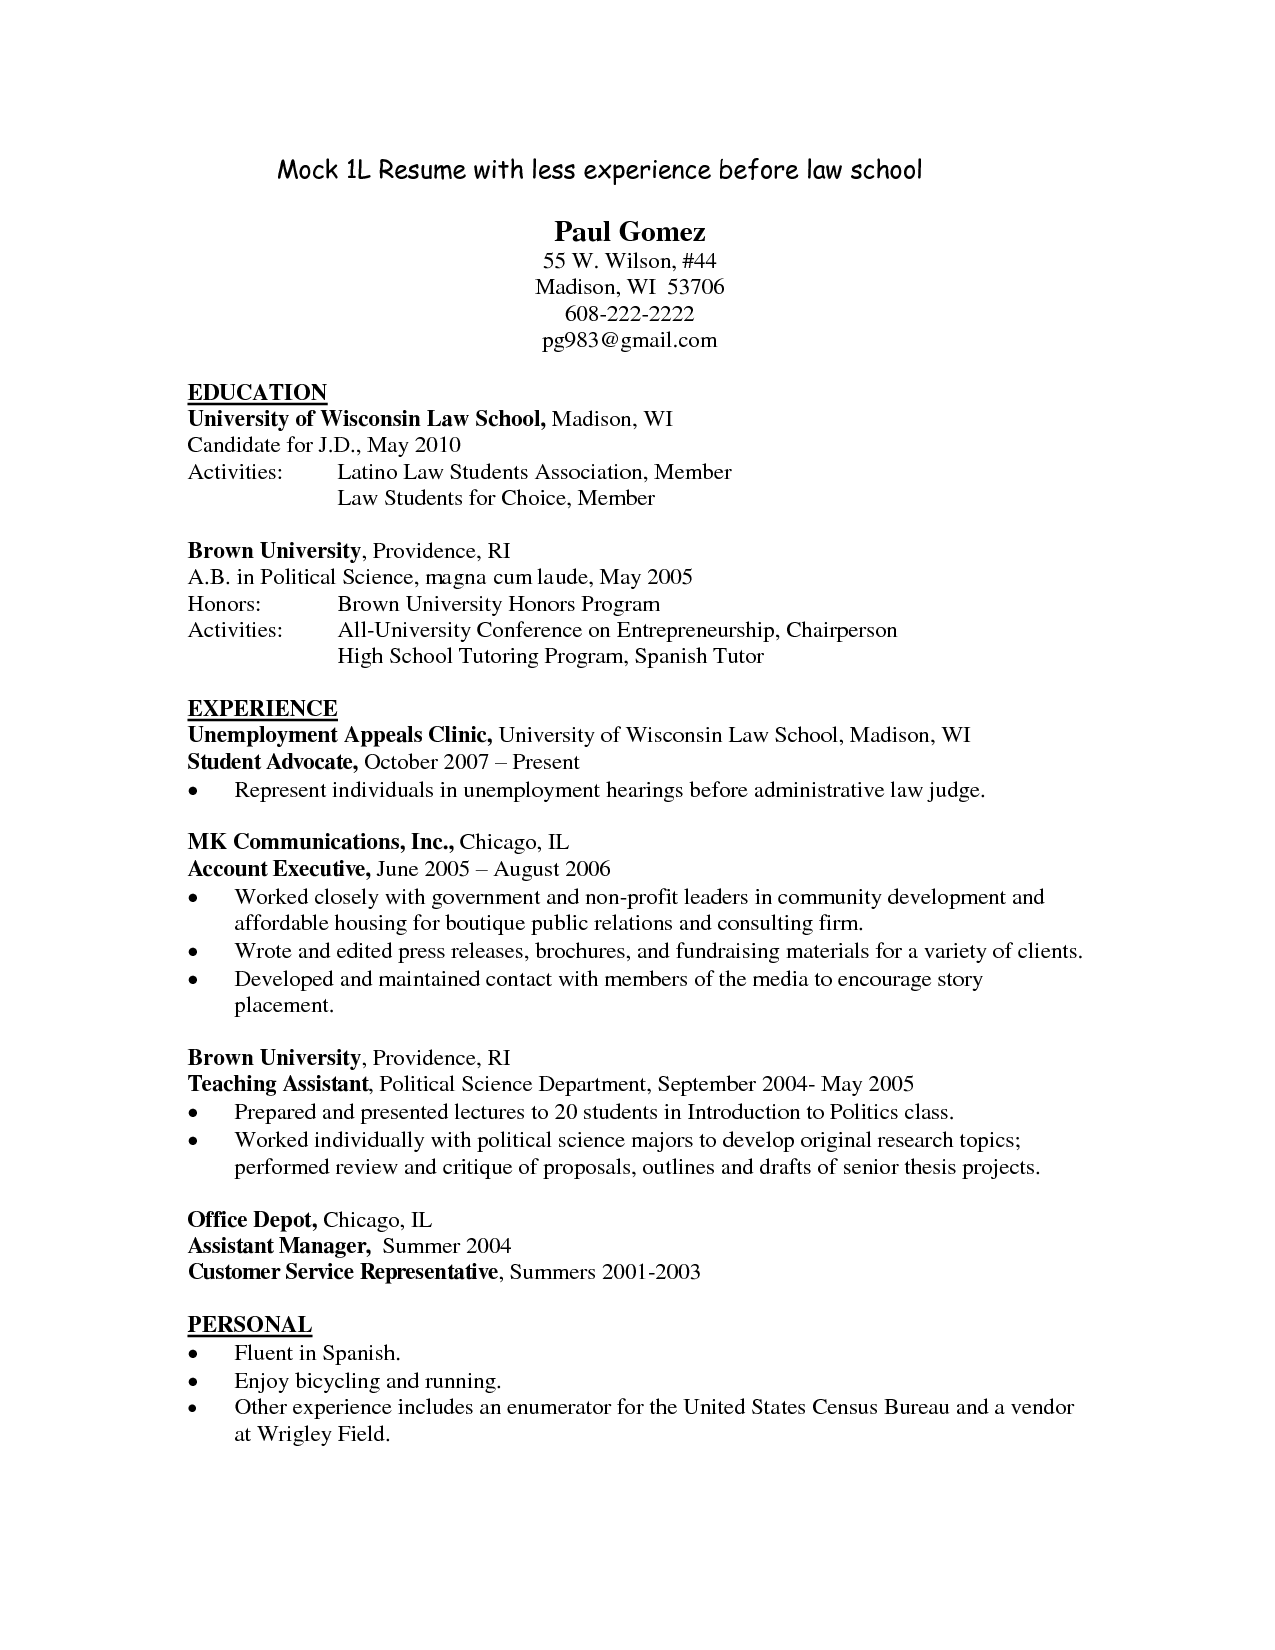 resume templates for law students